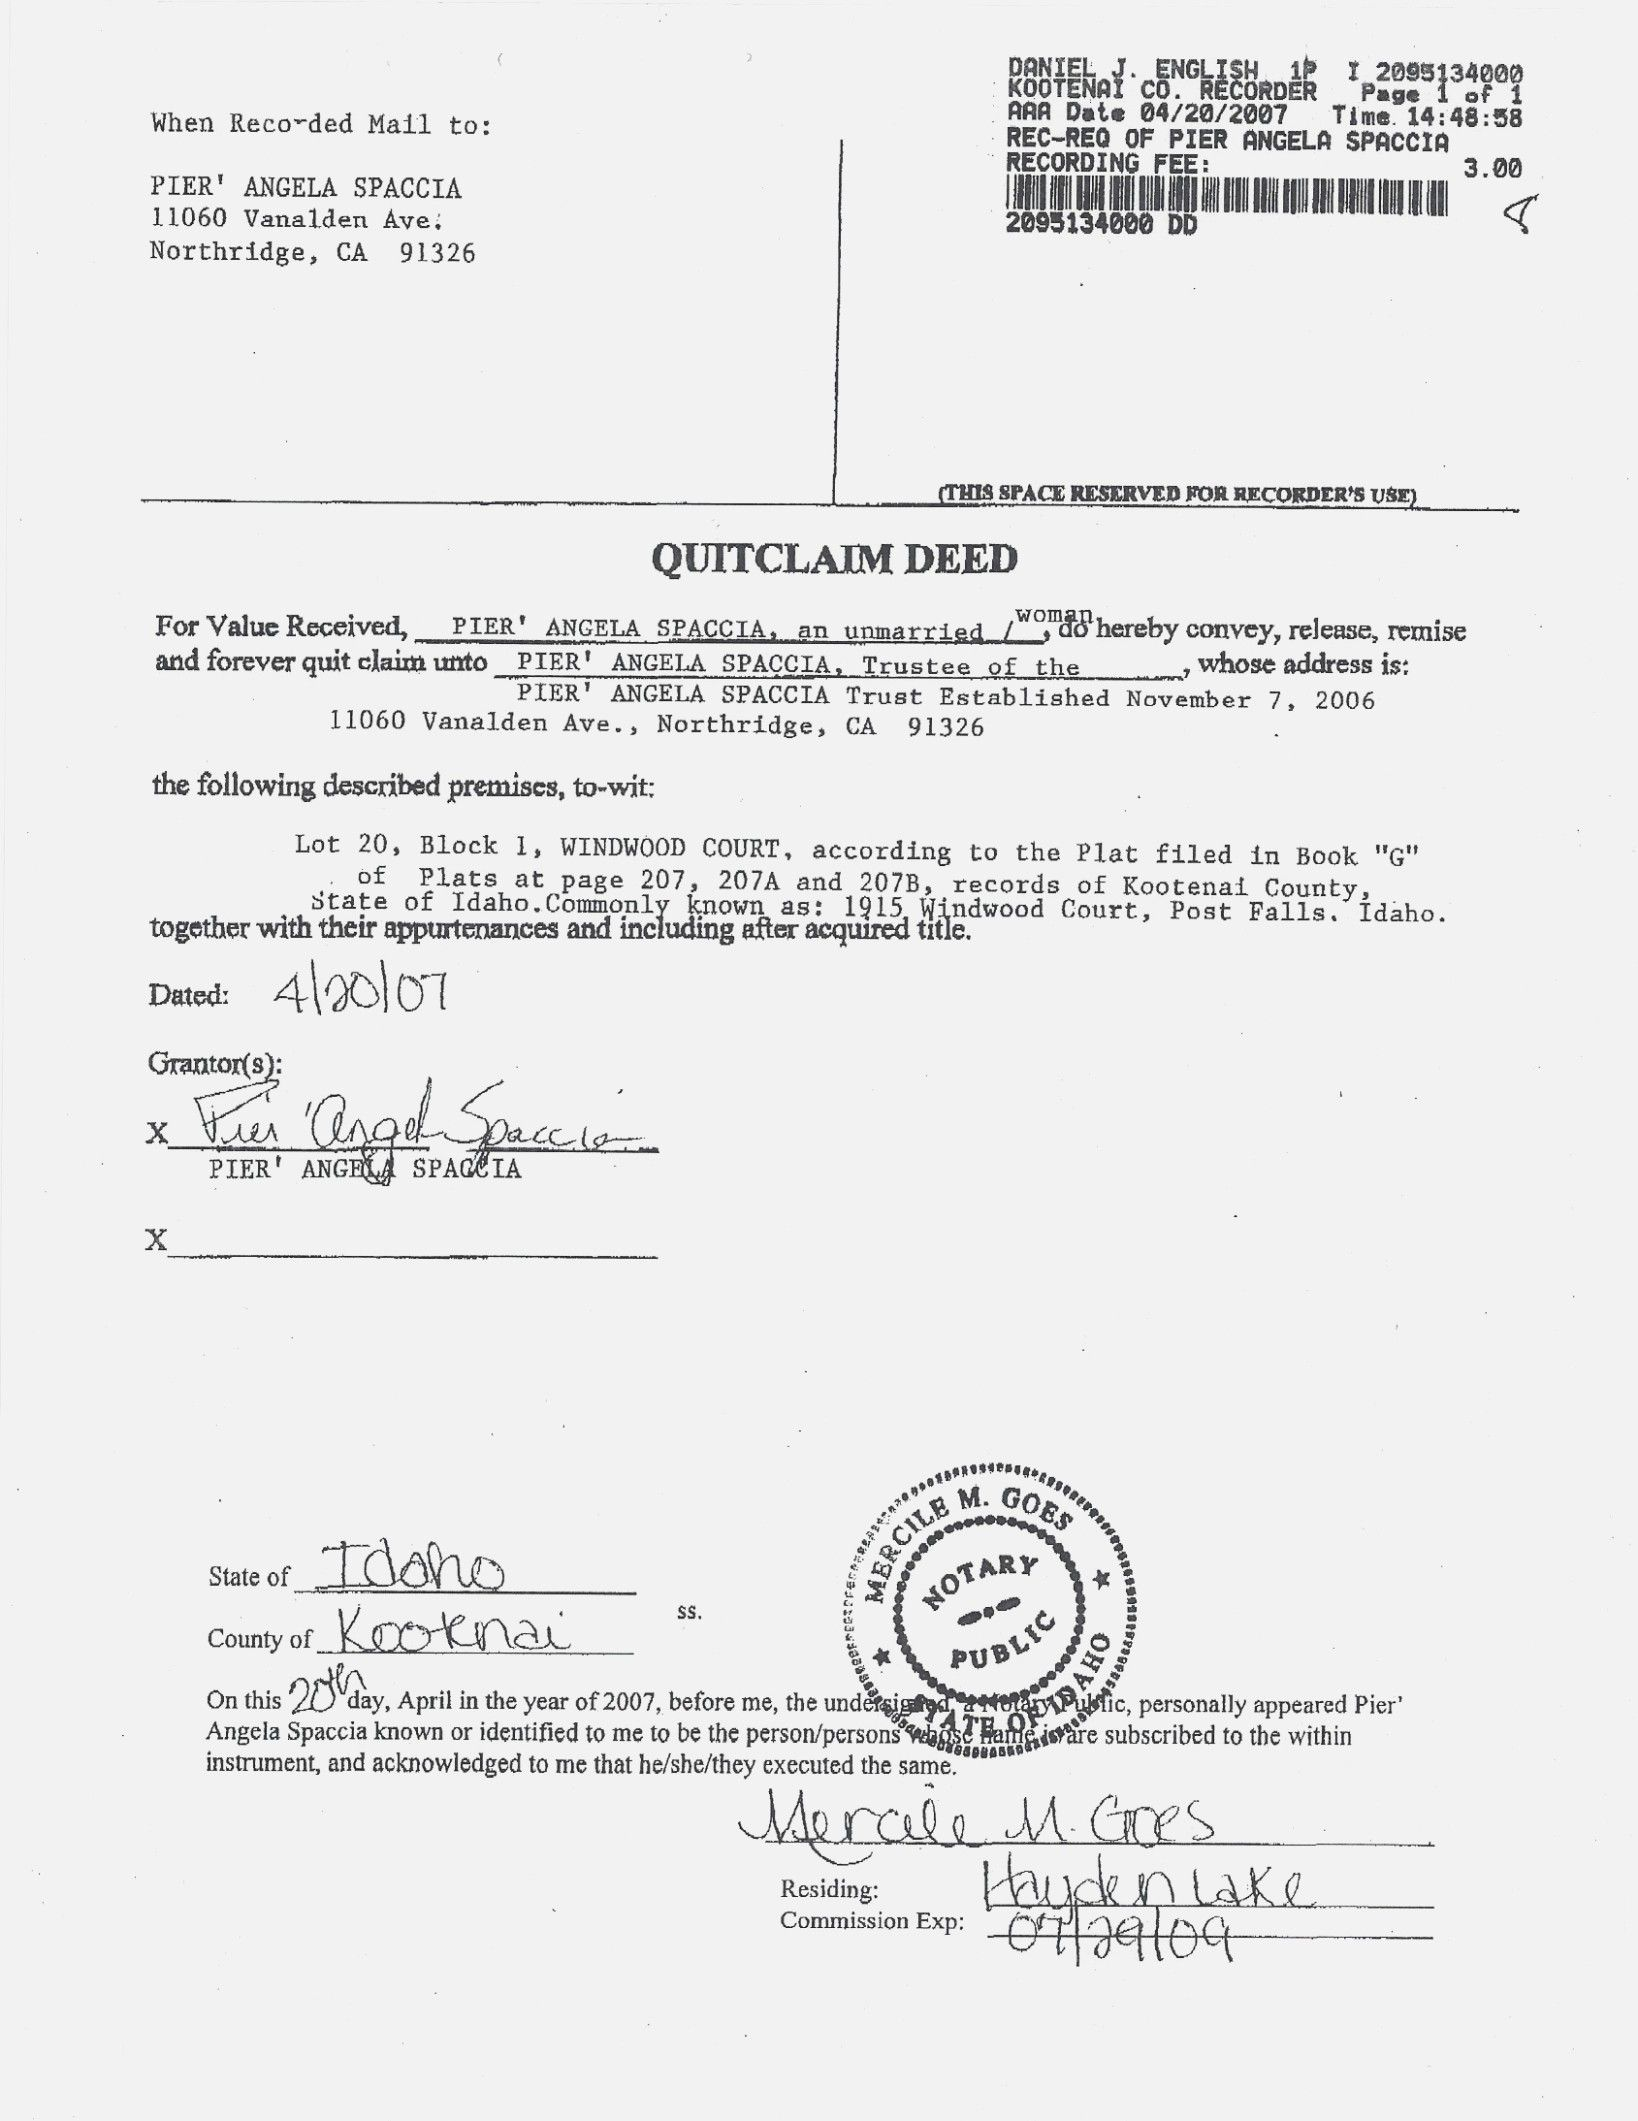 Quit Claim Deed Form California Sample 2 Thoughts You Have As Quit Claim Deed Form Californi Monthly Budget Template Excel Budget Template Quitclaim Deed